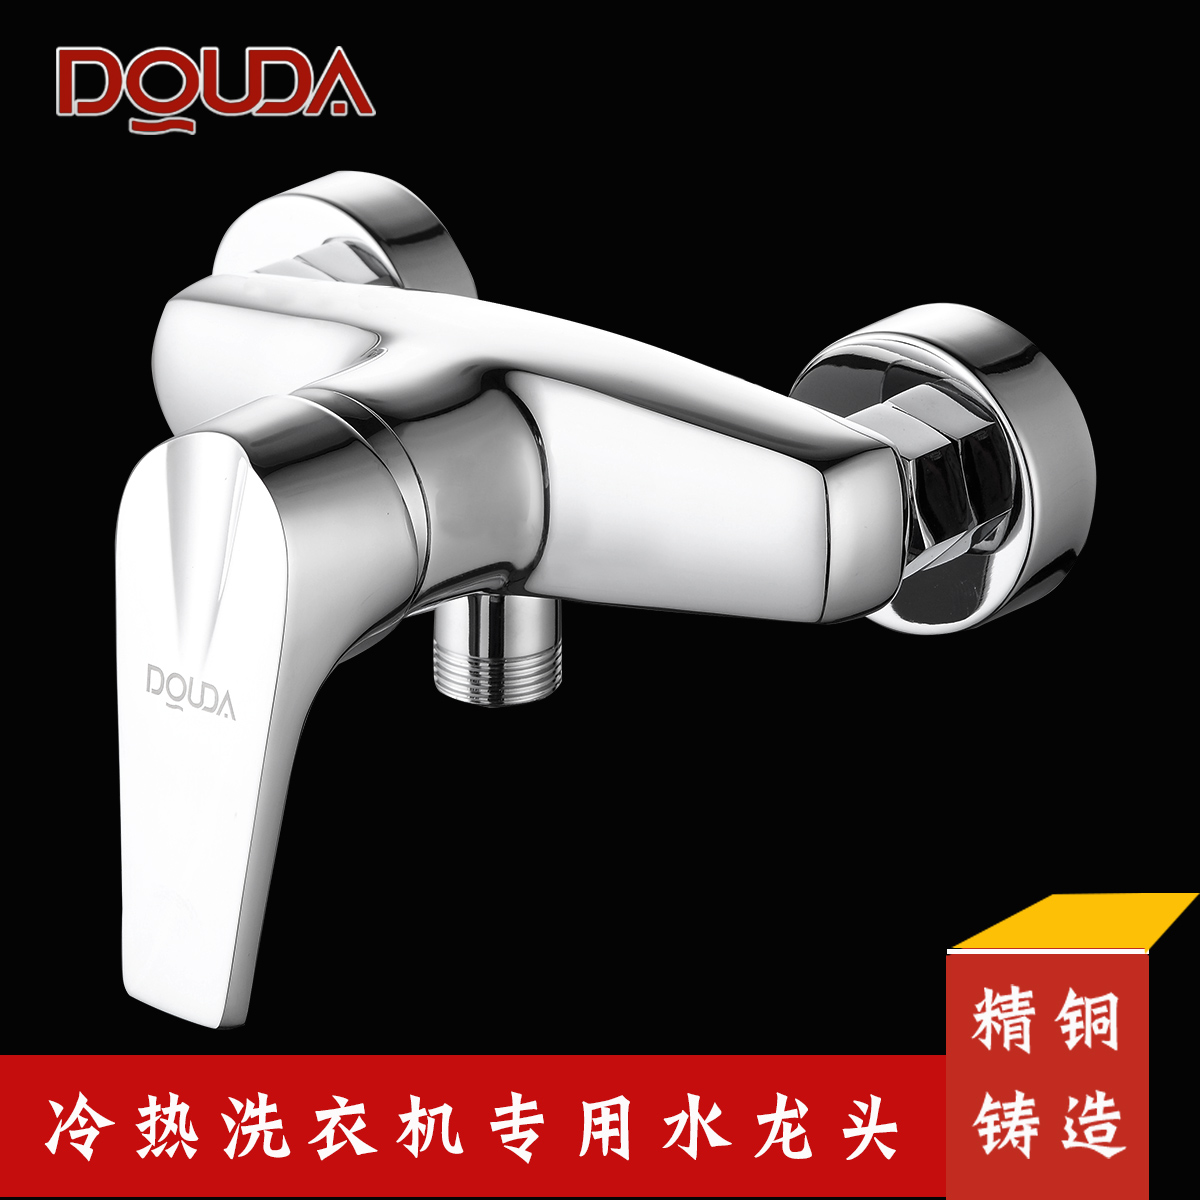 USD 96.63] Di Ouda bathroom hot and cold washing machine copper ...